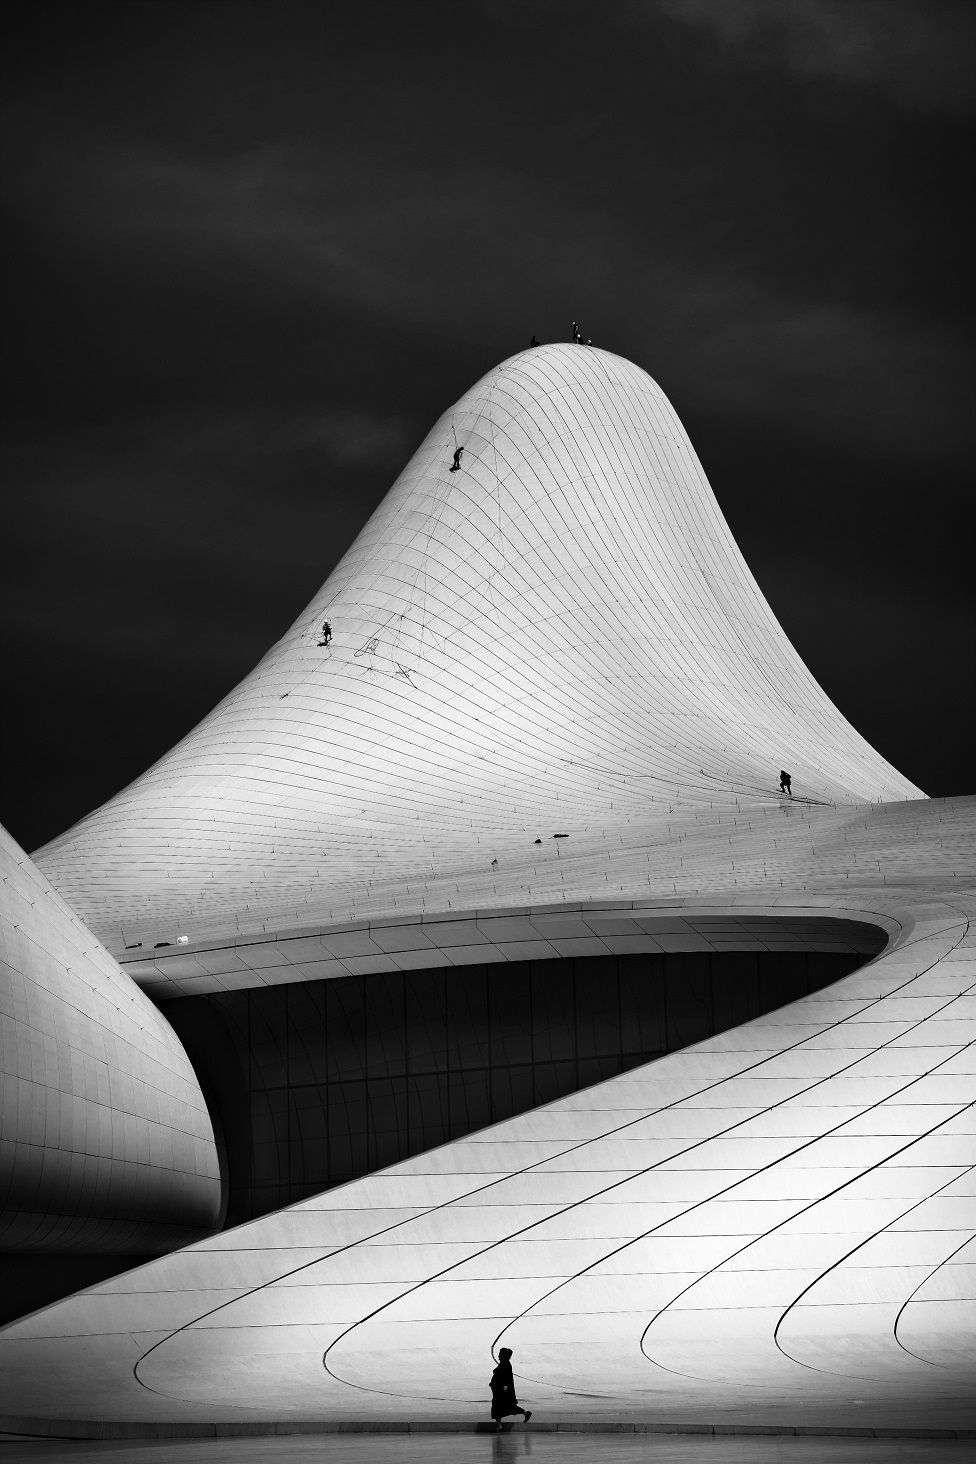 A black and white photo of a curved building